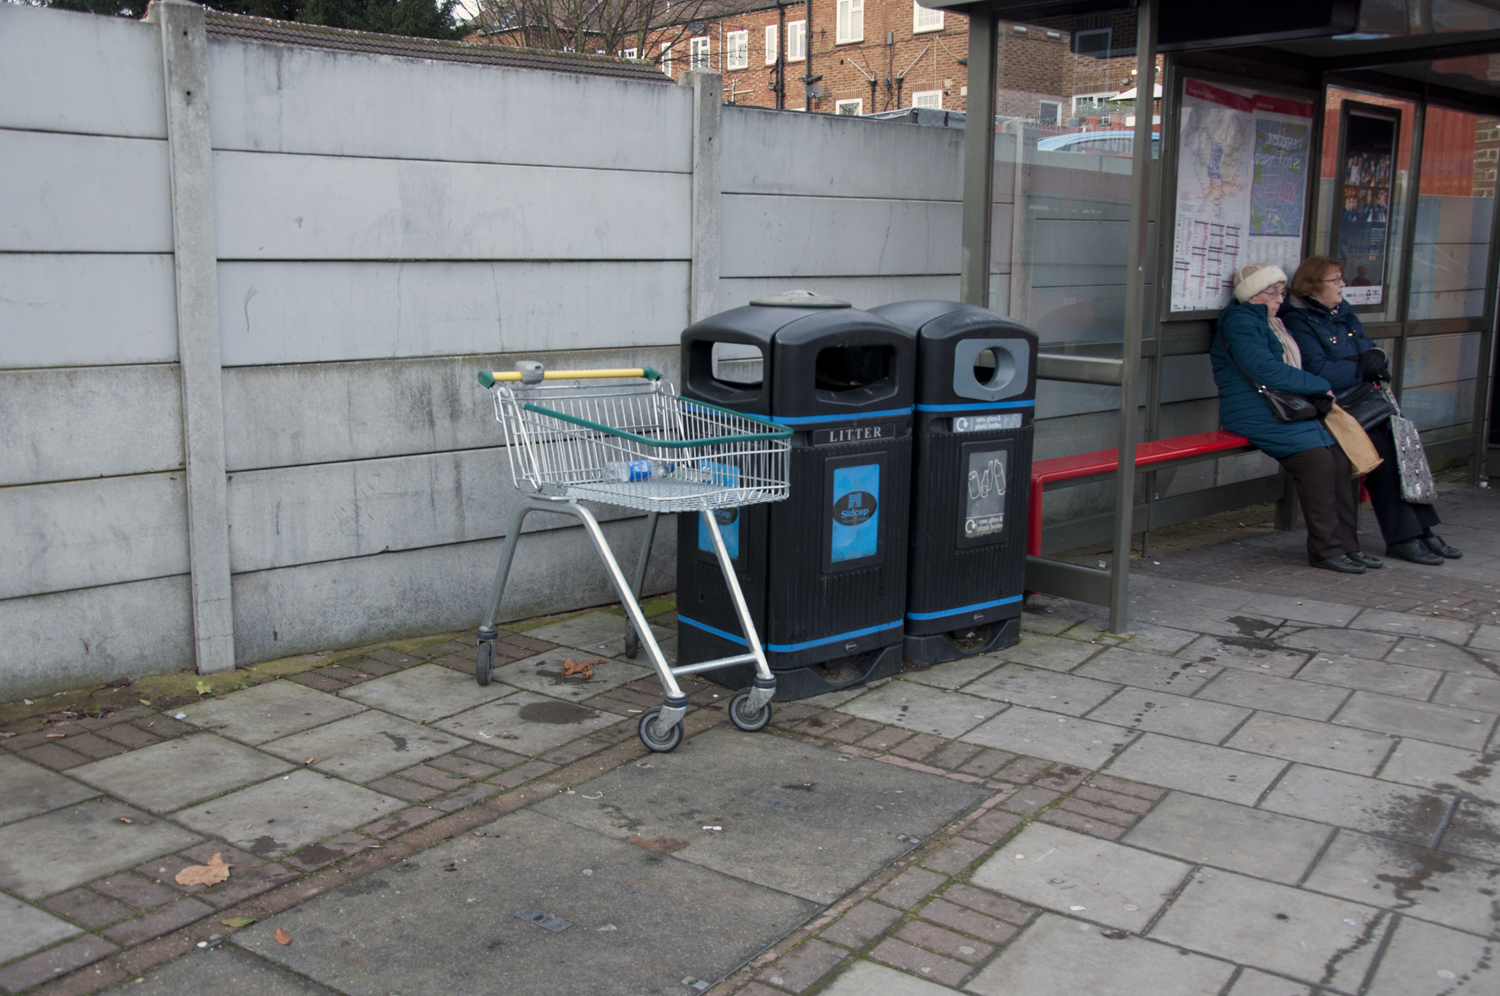 2014-Discarded-Shopping-Cart_04.jpg